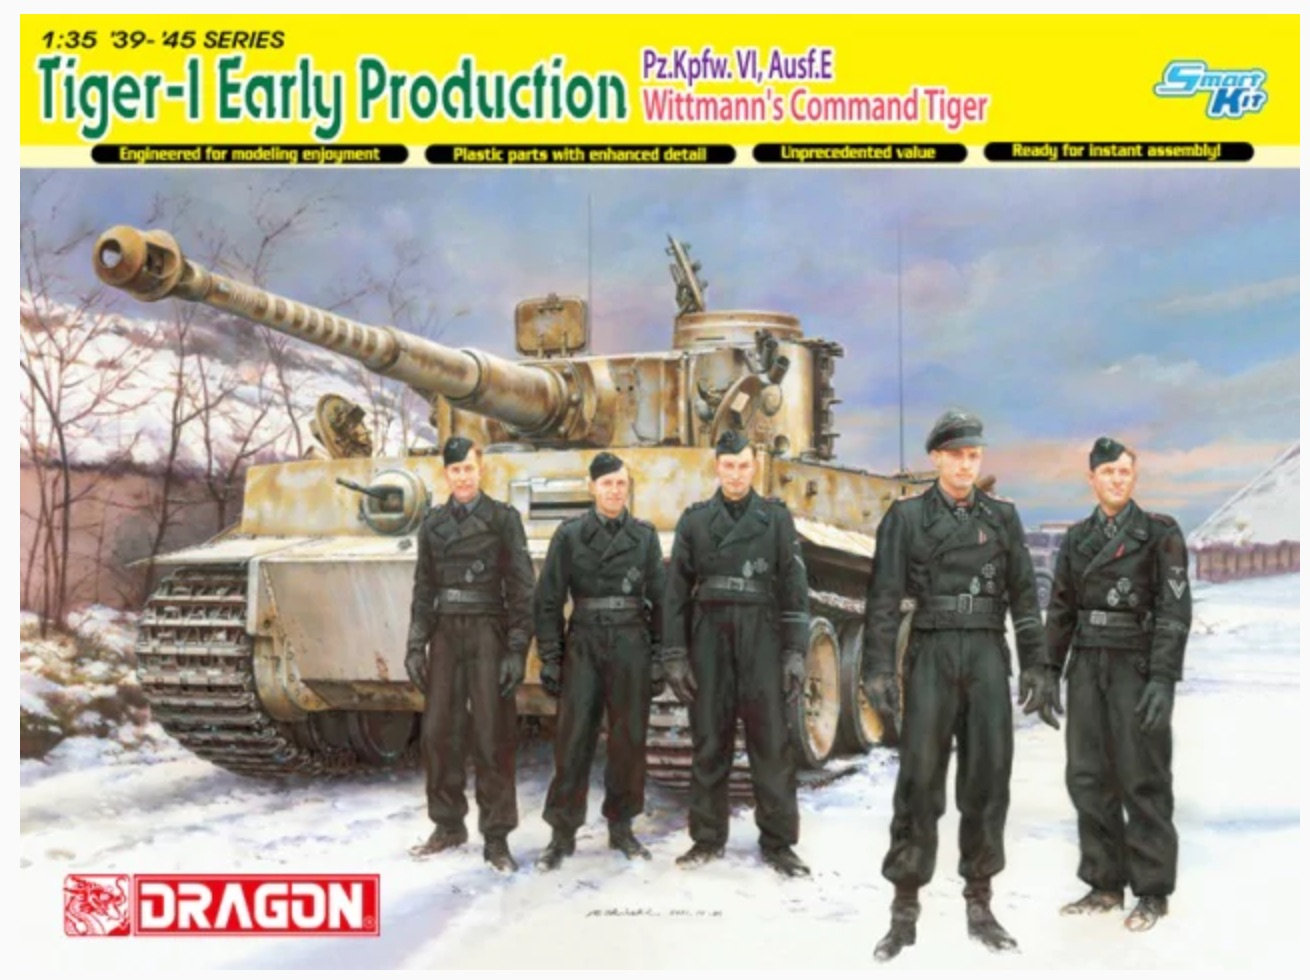 Tiger-1 Early production, kit Dragon 9ktj